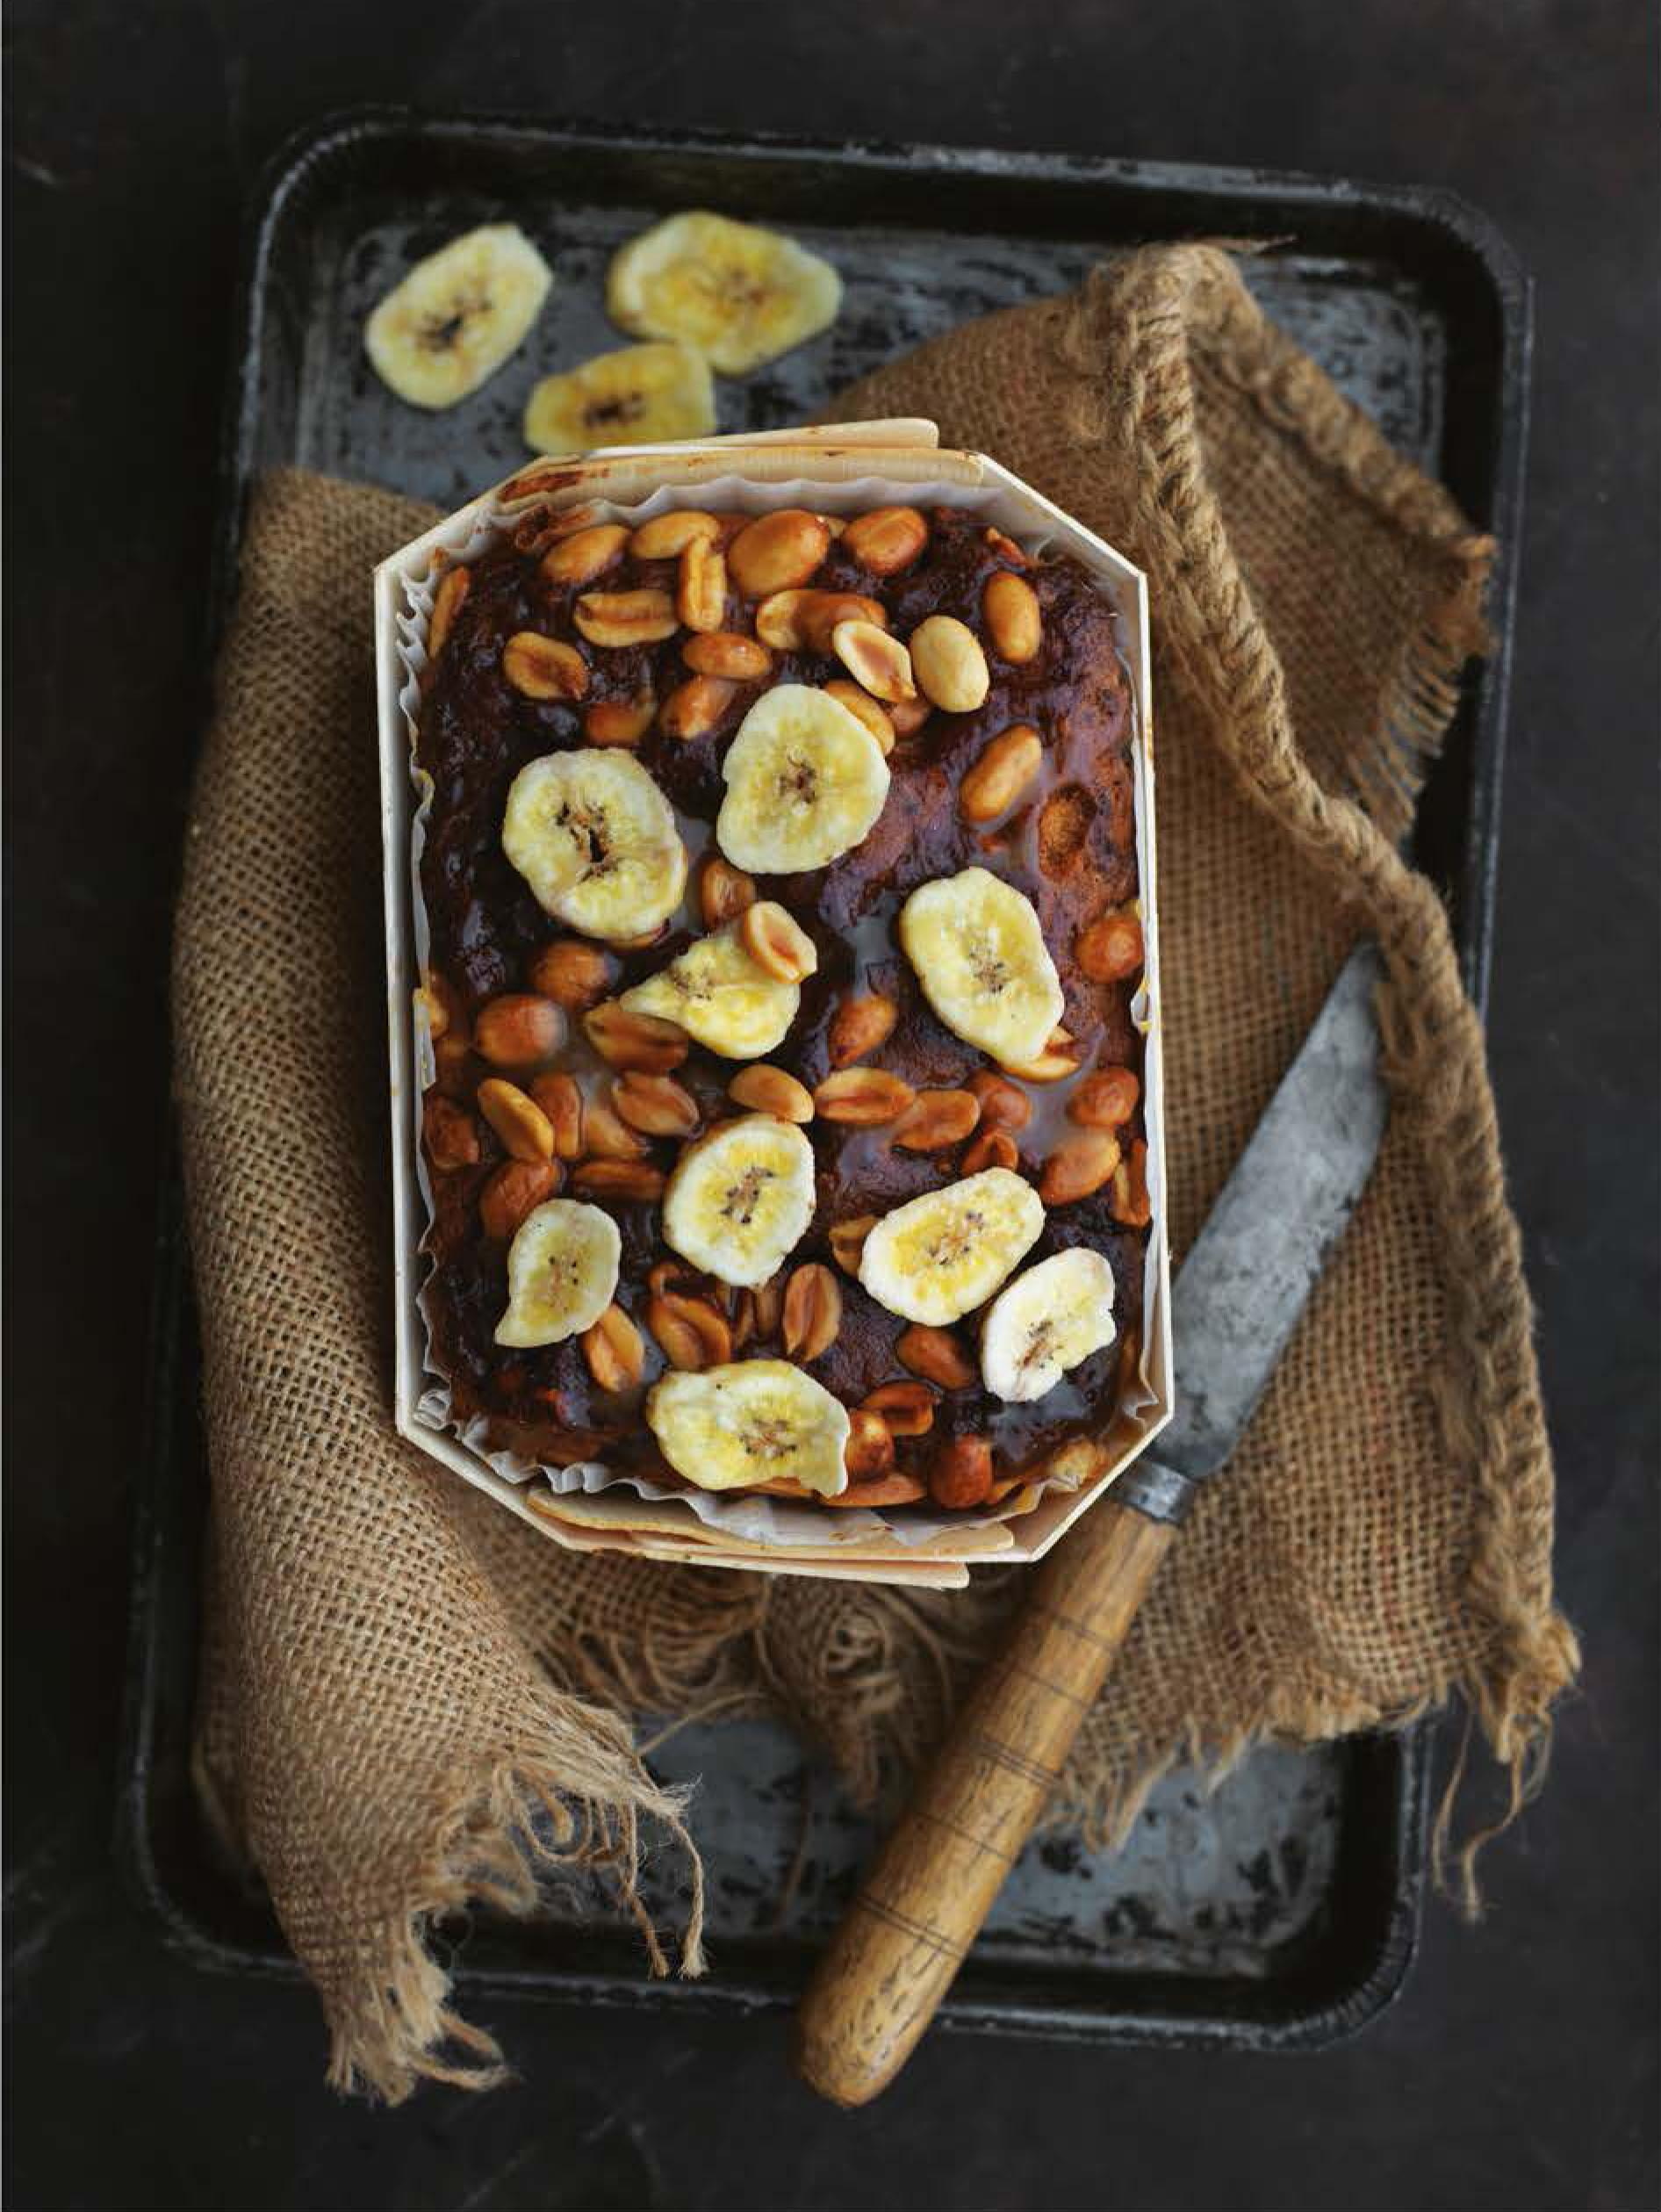 Accra banana and peanut cake